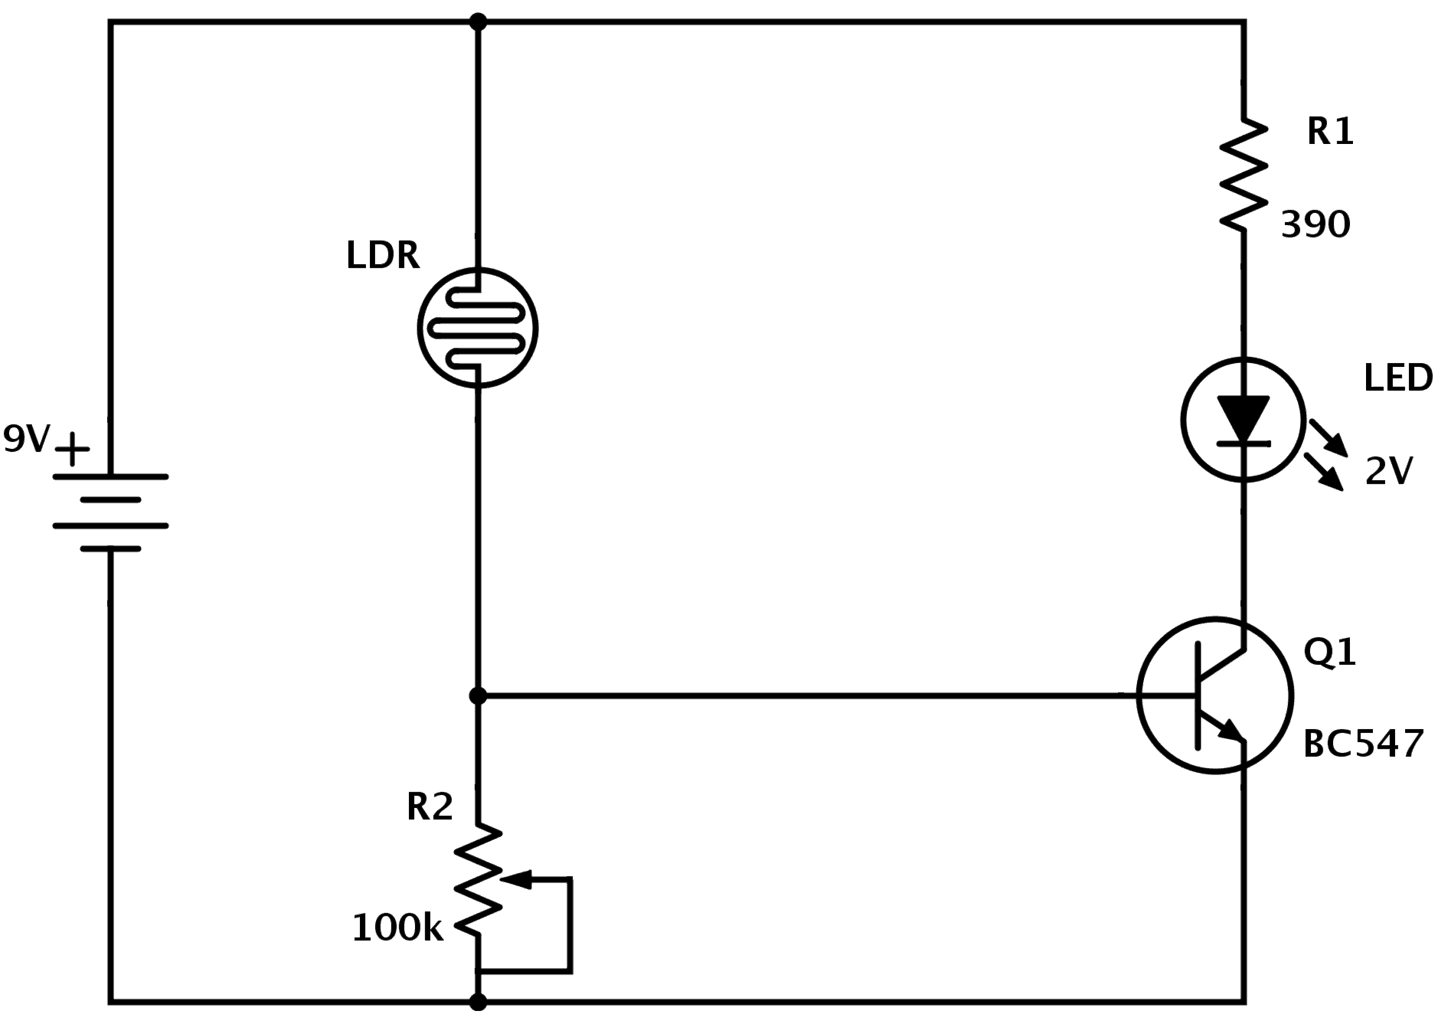 LDR circuit improved circuit diagram how to read and understand any schematic reading wiring diagrams at mifinder.co